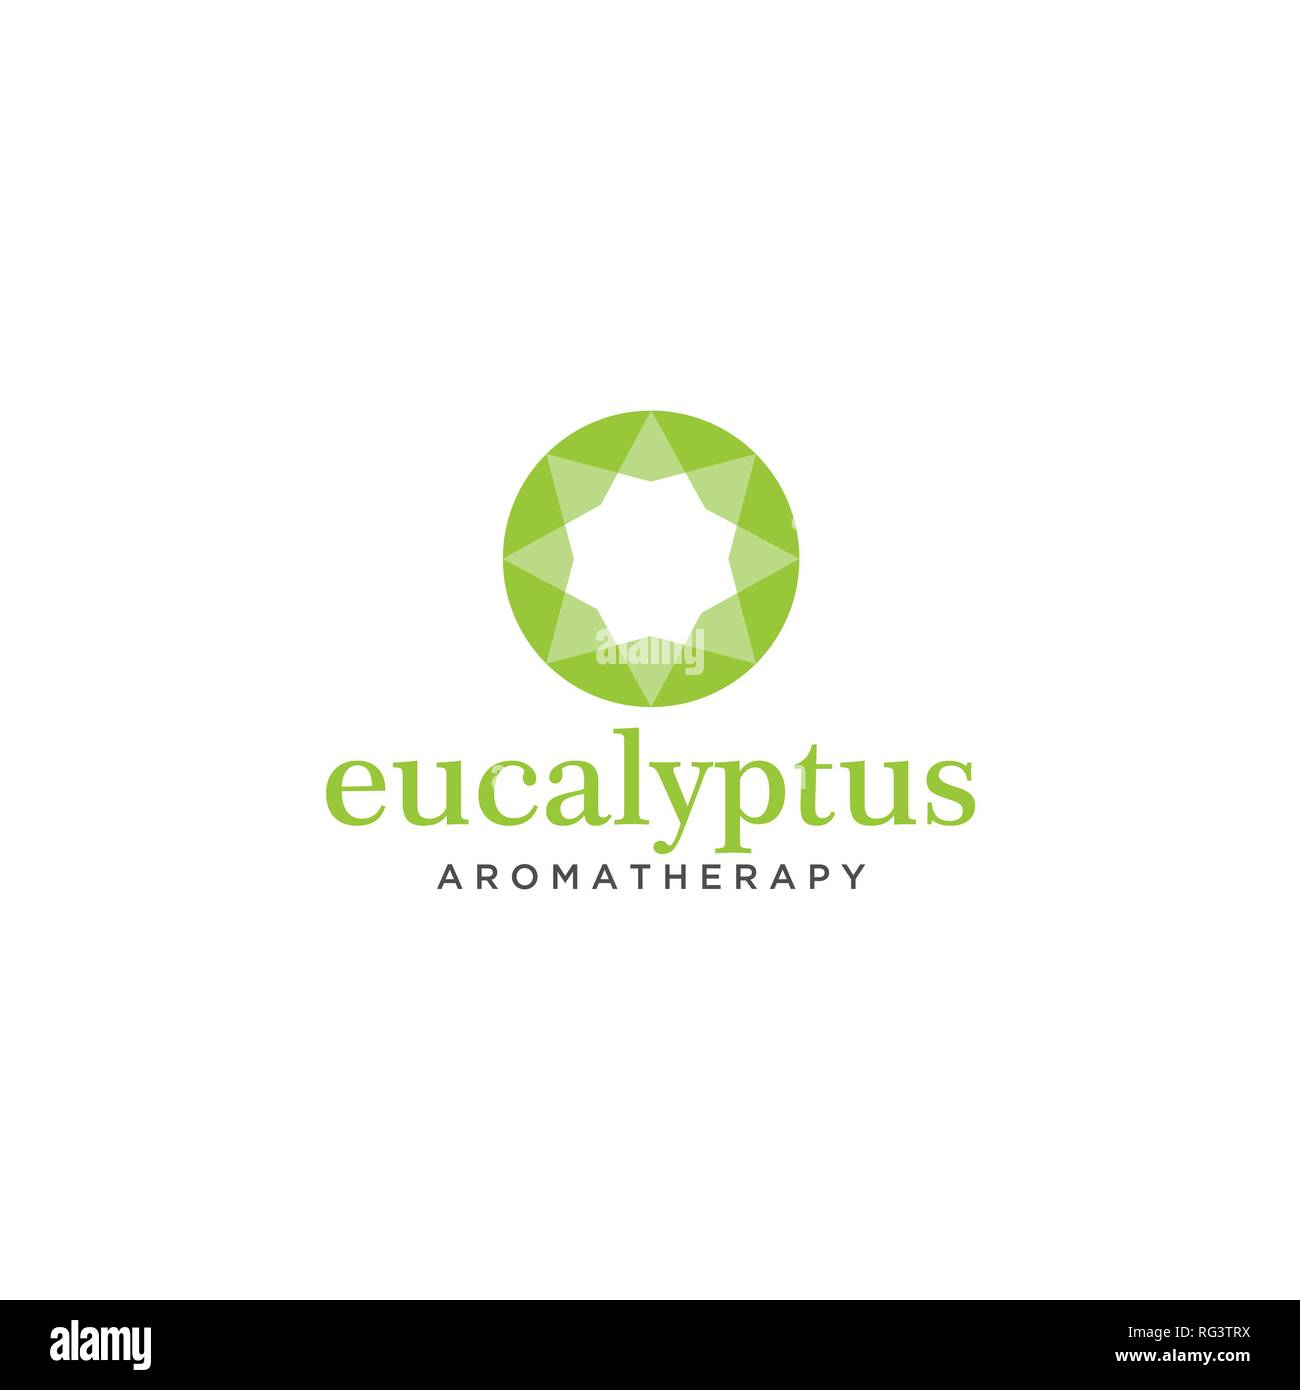 Simple Modern Flat Green Eucalyptus Round Logo Design Template - Stock Vector